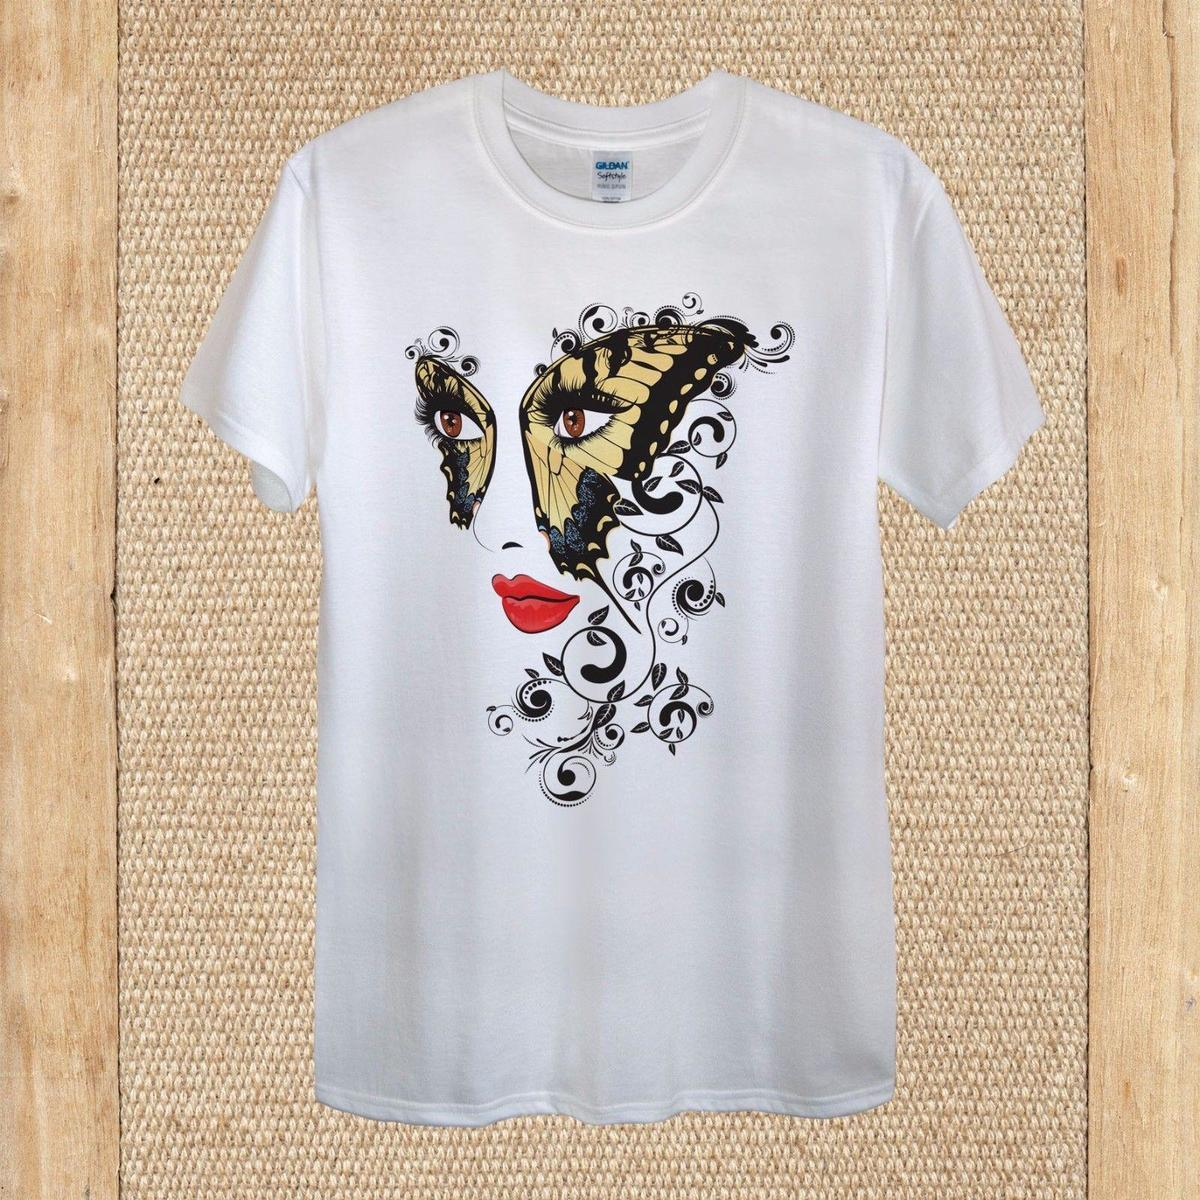 Grosshandel Floral Ornament Butterfly Girl Face T Shirt Design